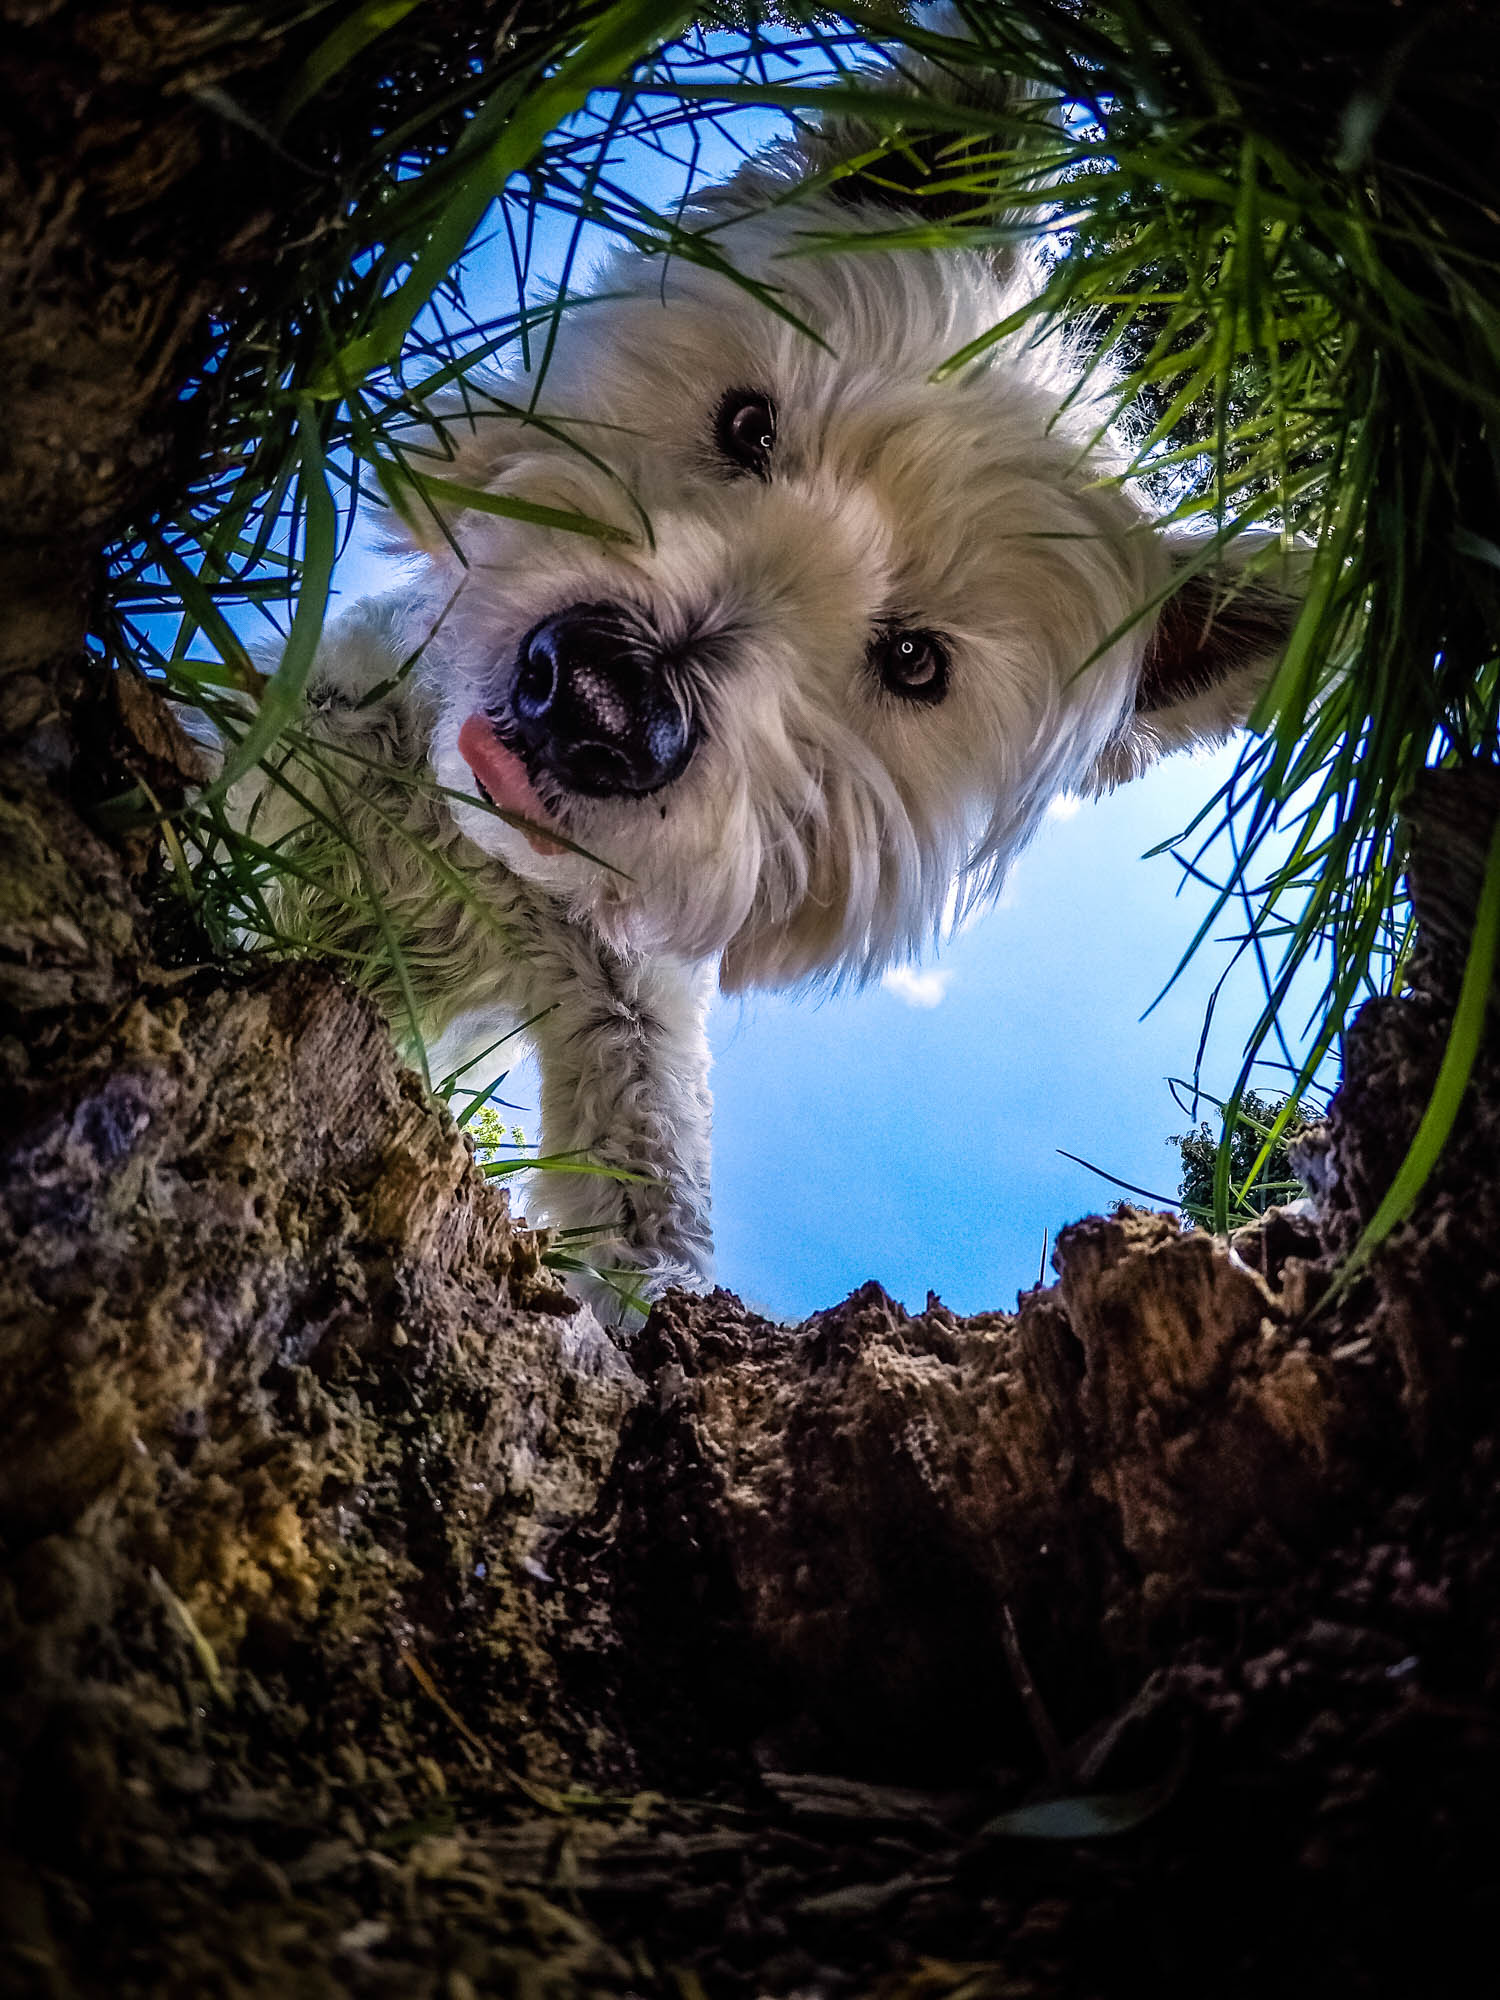 A West Highland White Terrier dog peers into a rabbit hole